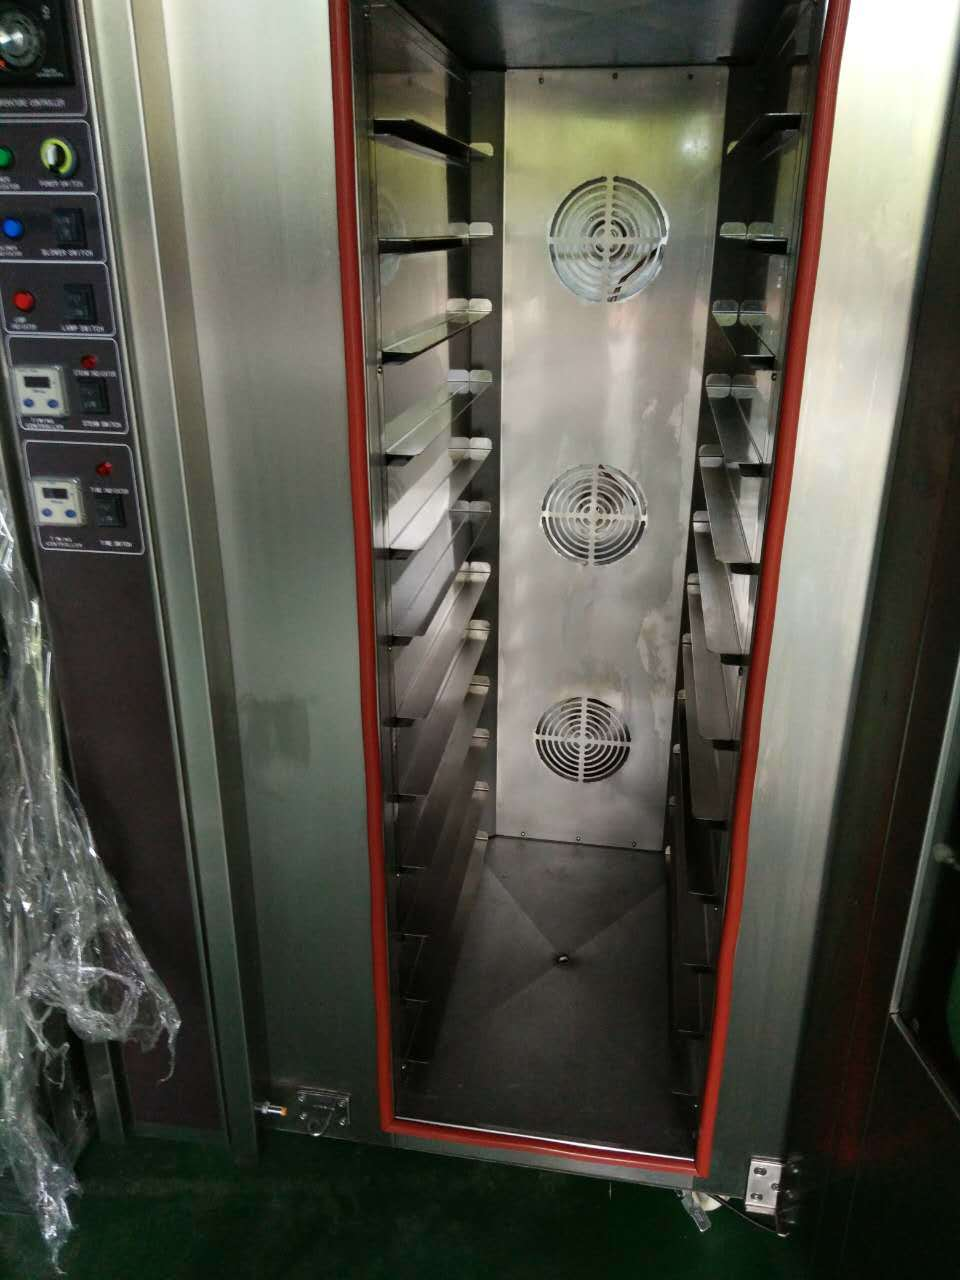 Ykz-12 Gas Convection Oven for Bread Baking